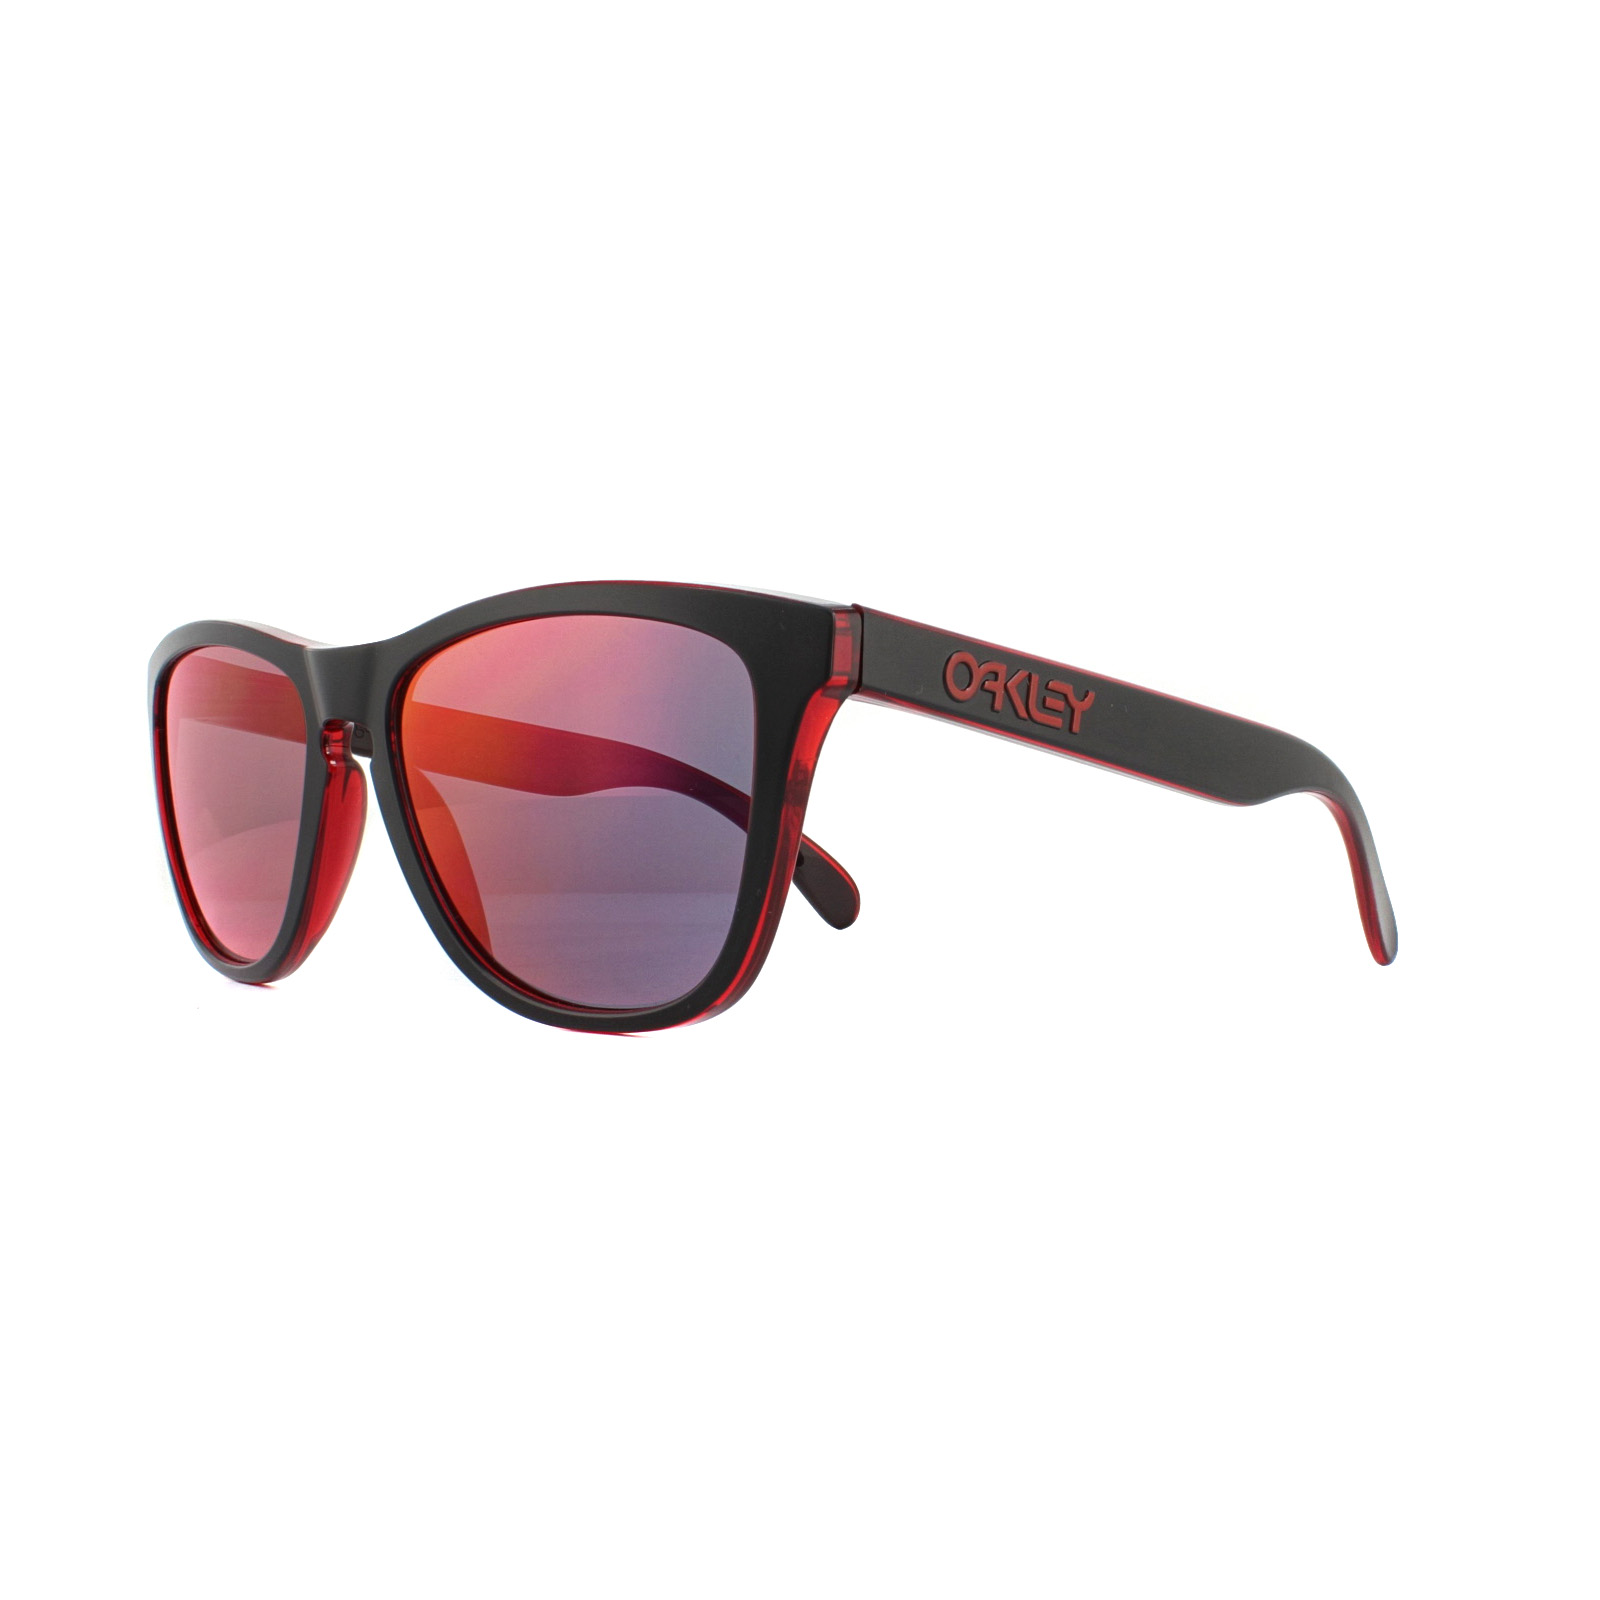 7f9f11a35fbac Cheap Oakley Frogskins Sunglasses - Discounted Sunglasses